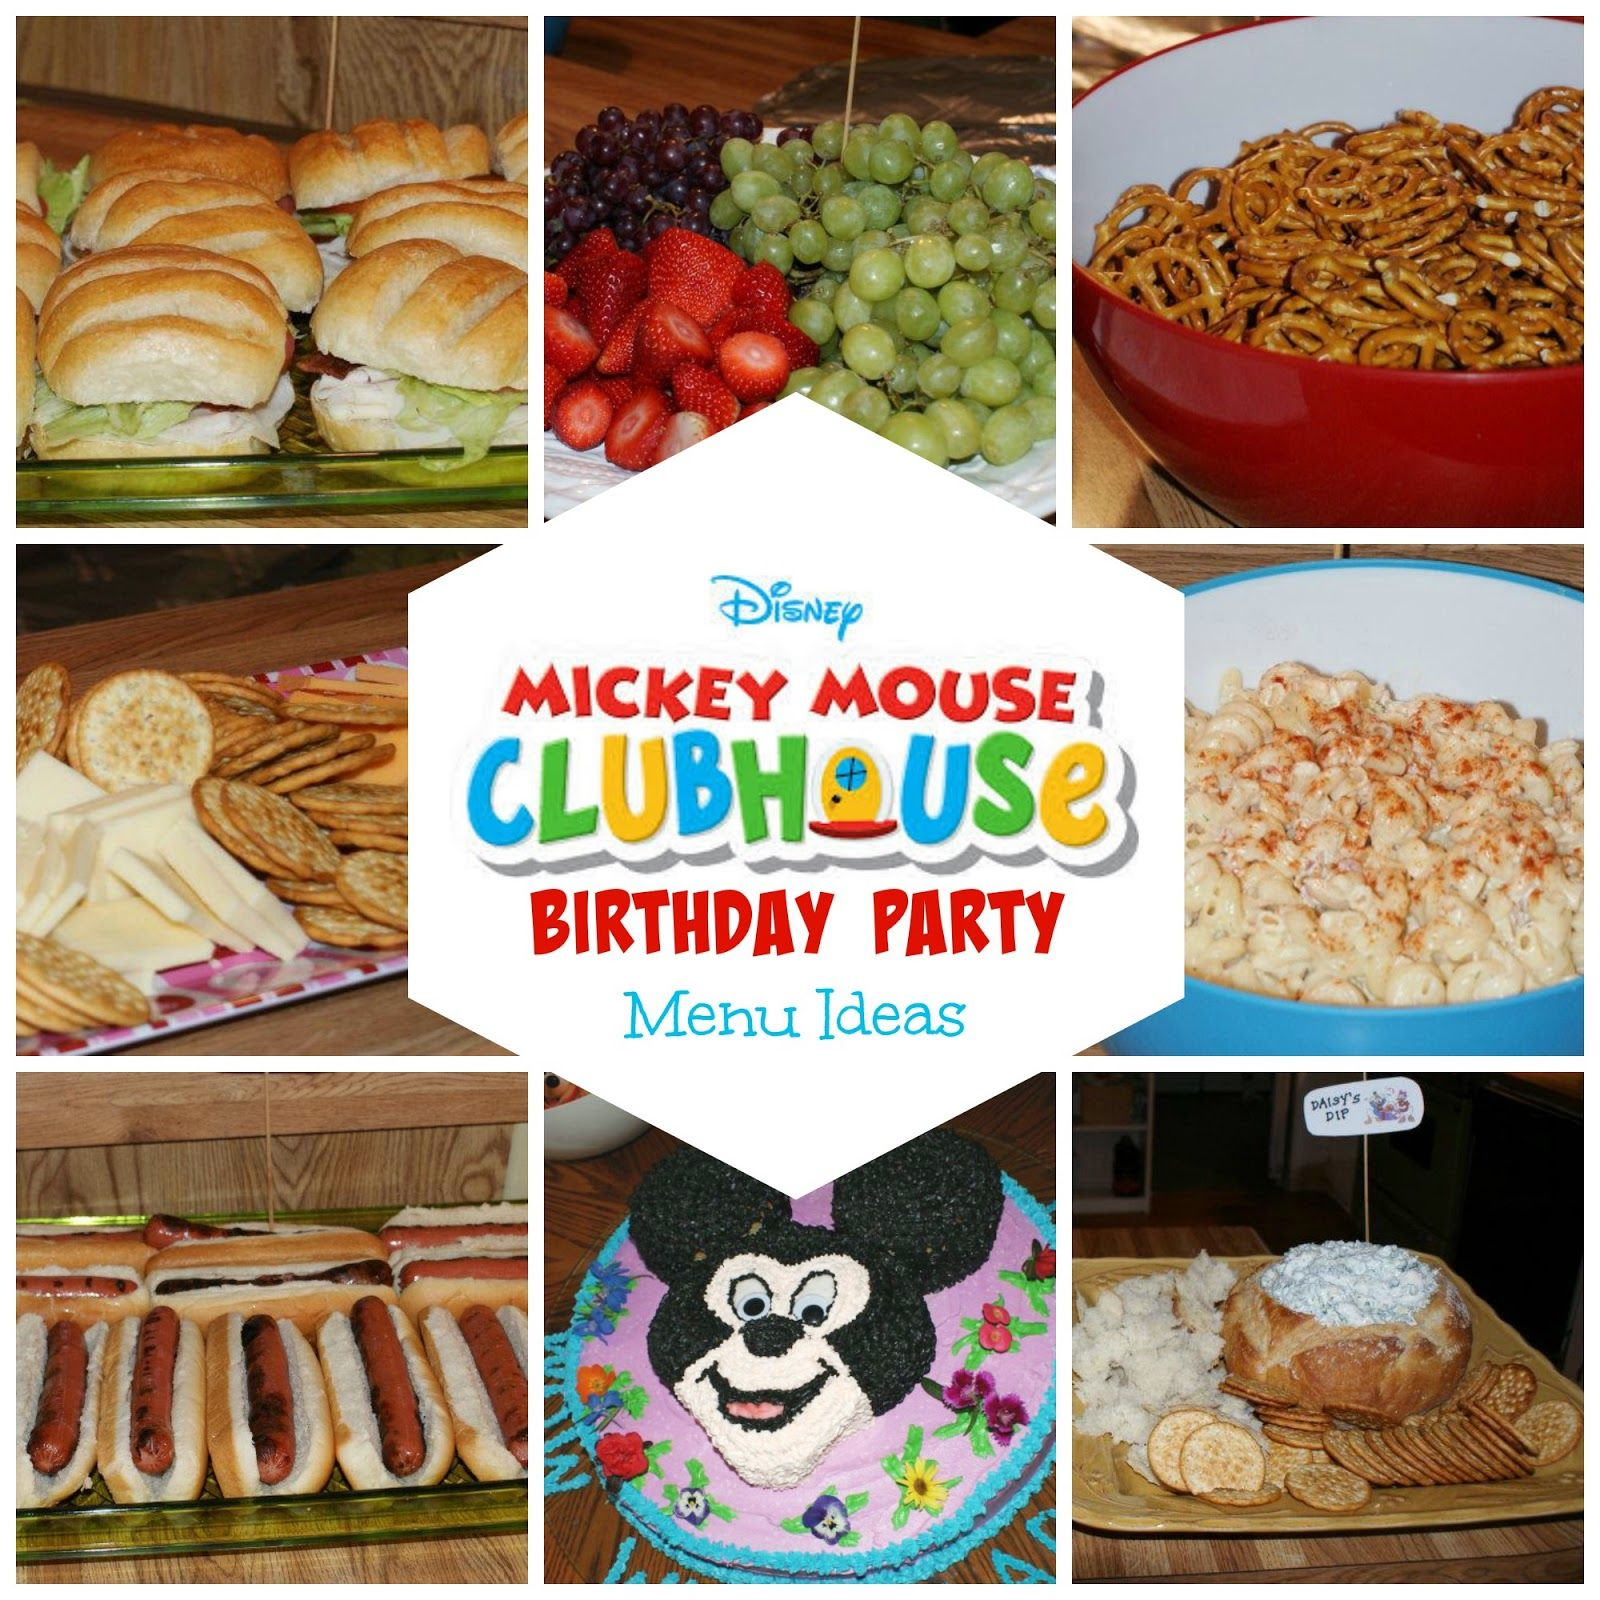 8 Mickey Mouse Birthday Party Menu Ideas Birthday Party Menu Mickey Party Foods Kids Birthday Party Food